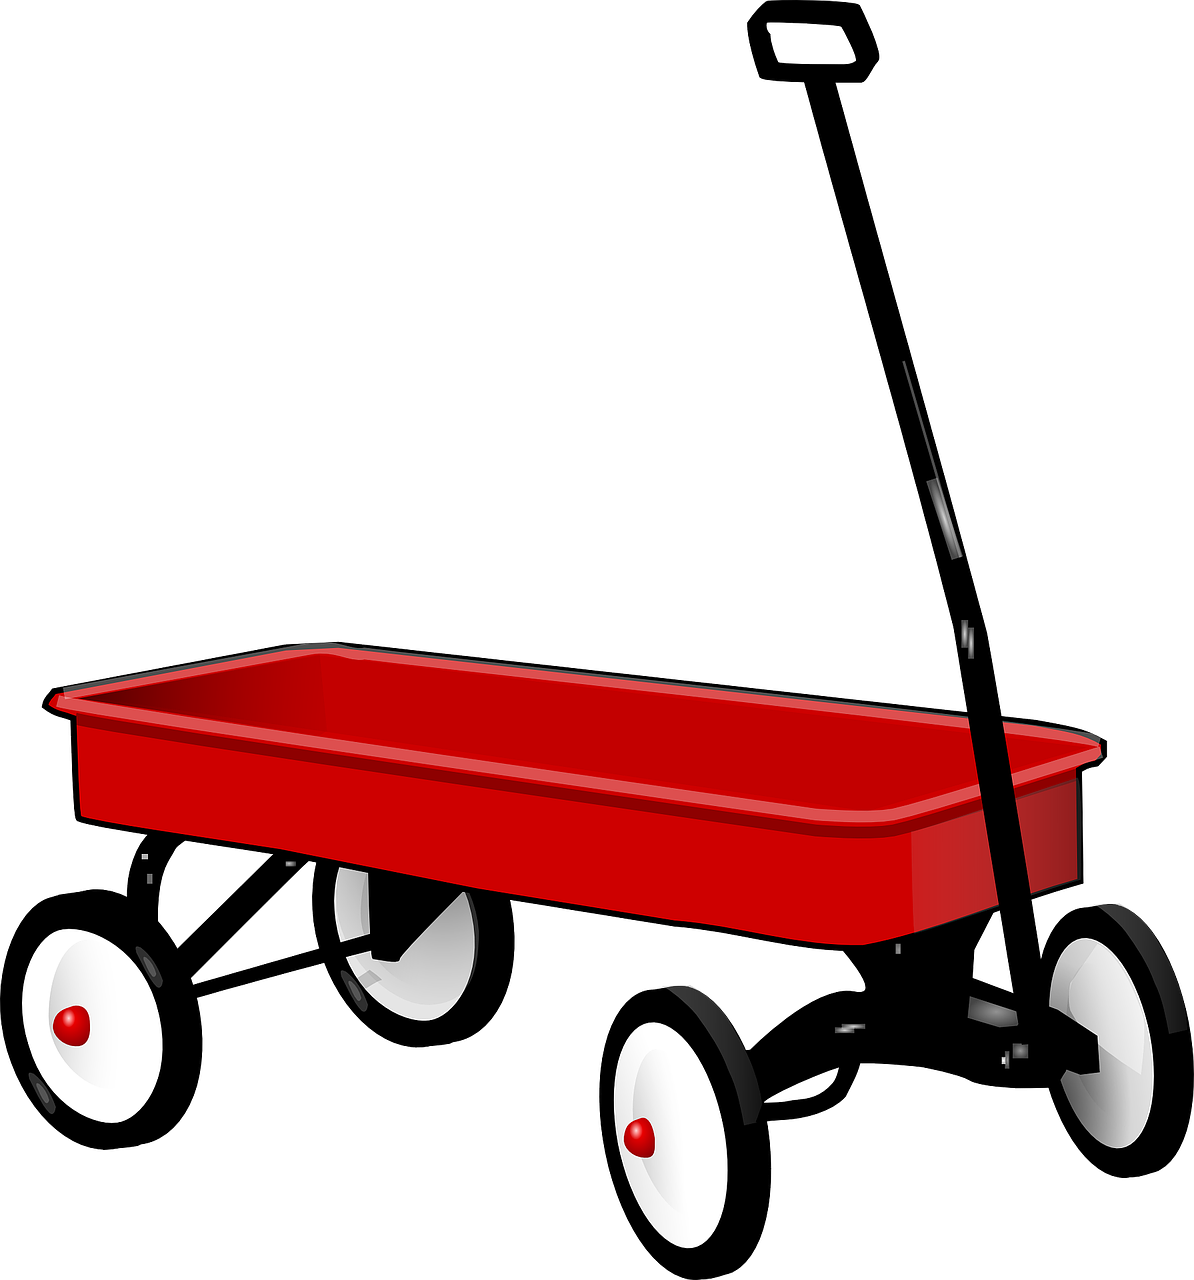 pull,wagon,trolley,pulling,cart,wheel,toy,red,kids,carriage,free vector graphics,free pictures, free photos, free images, royalty free, free illustrations, public domain